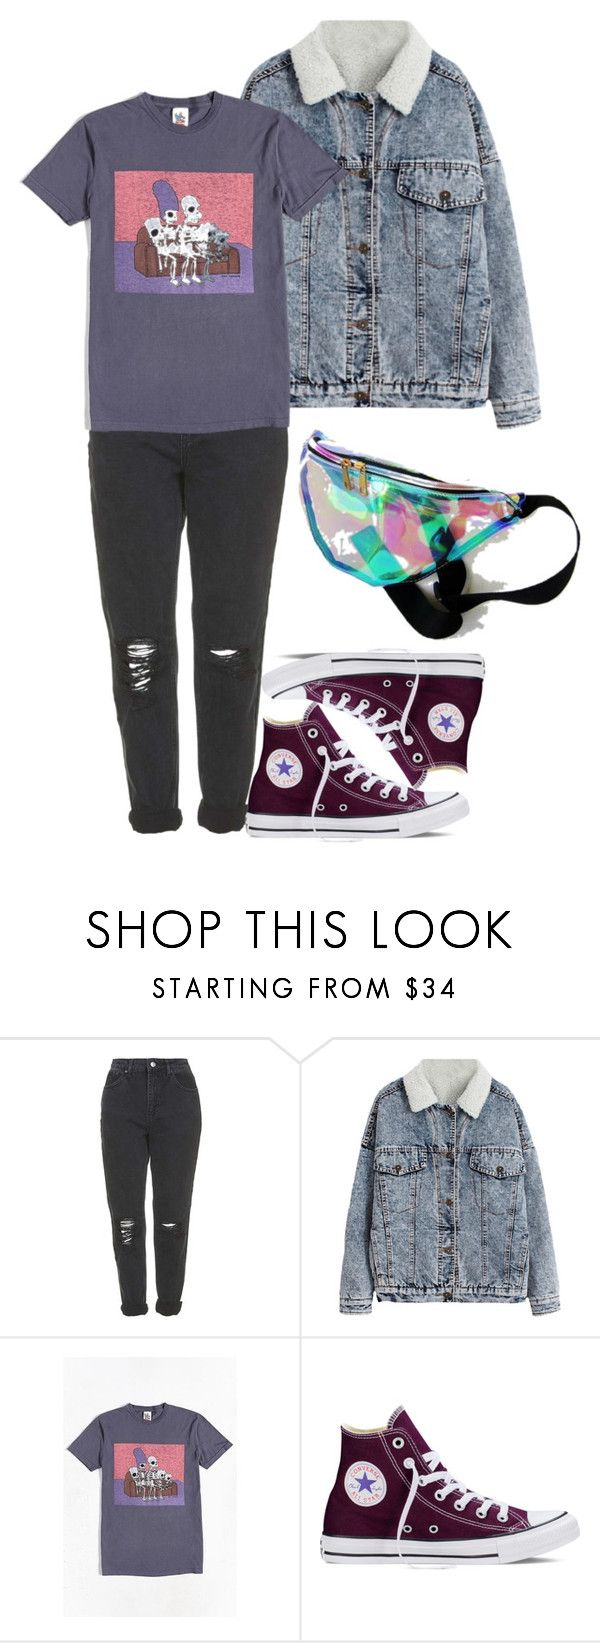 """23.09.2017"" by klorikon00 on Polyvore featuring мода, Topshop, Junk Food Clothing и Converse"